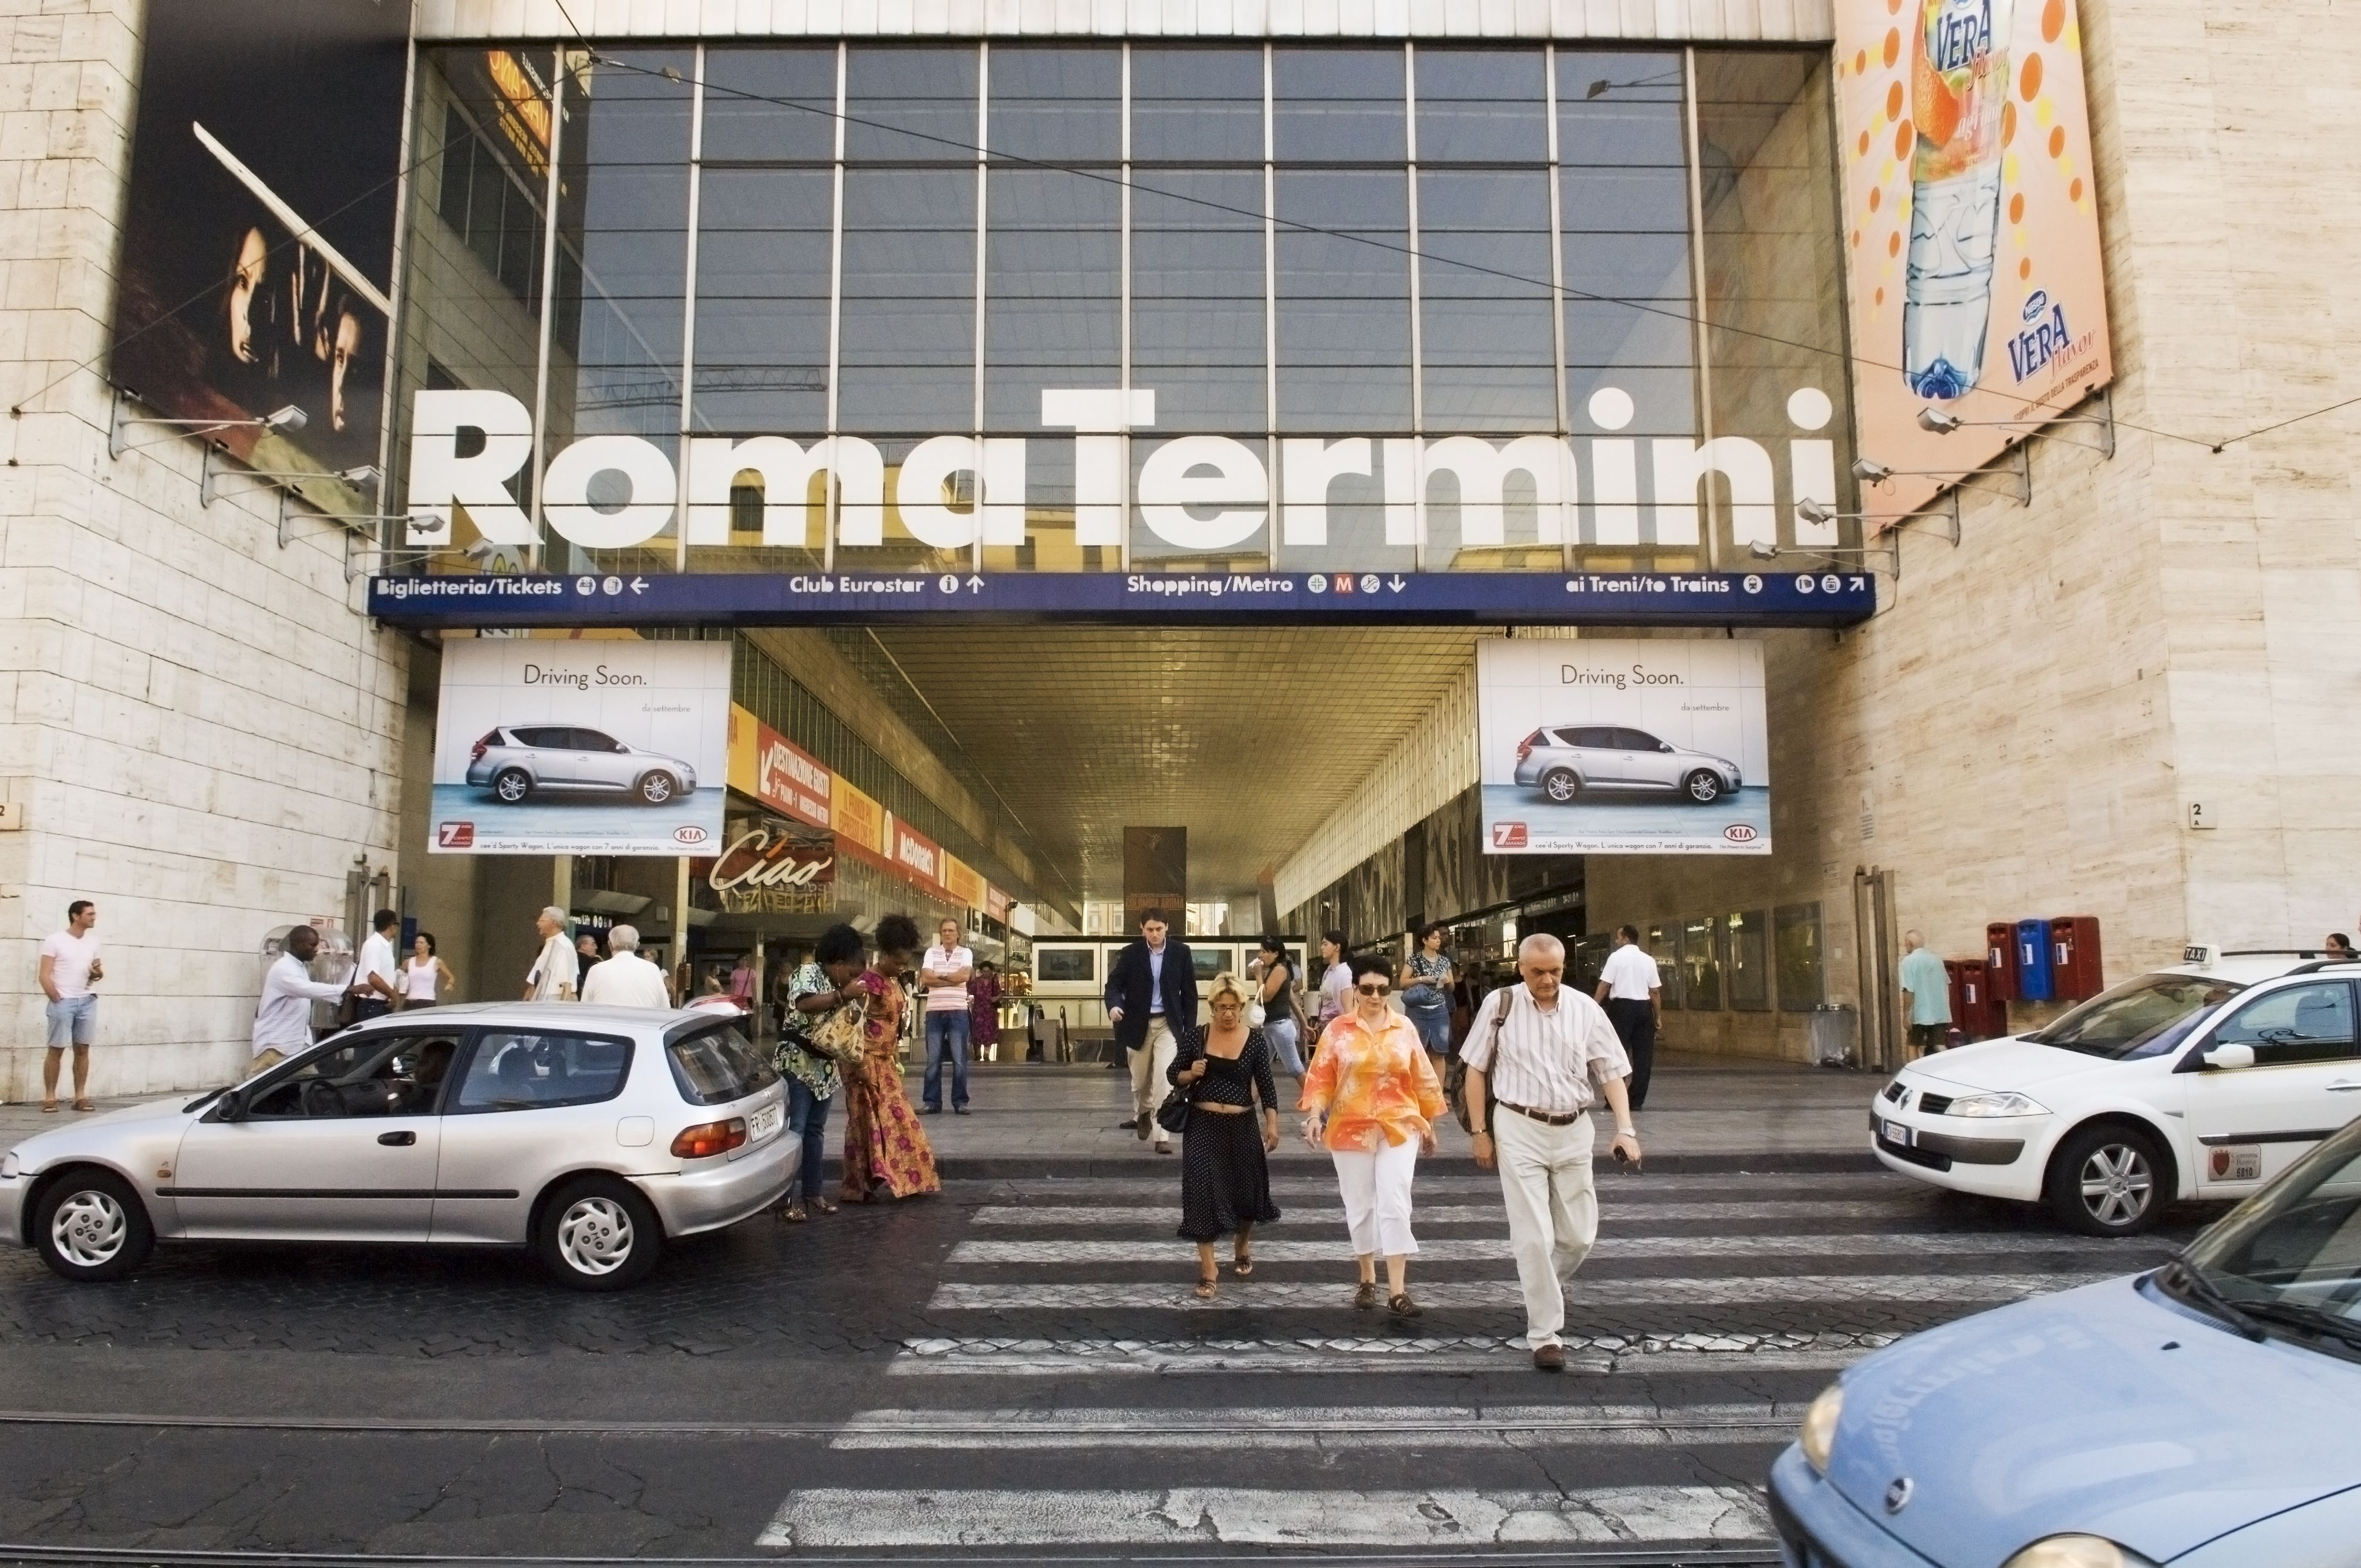 How To Get From Fco Airport To Termini Station